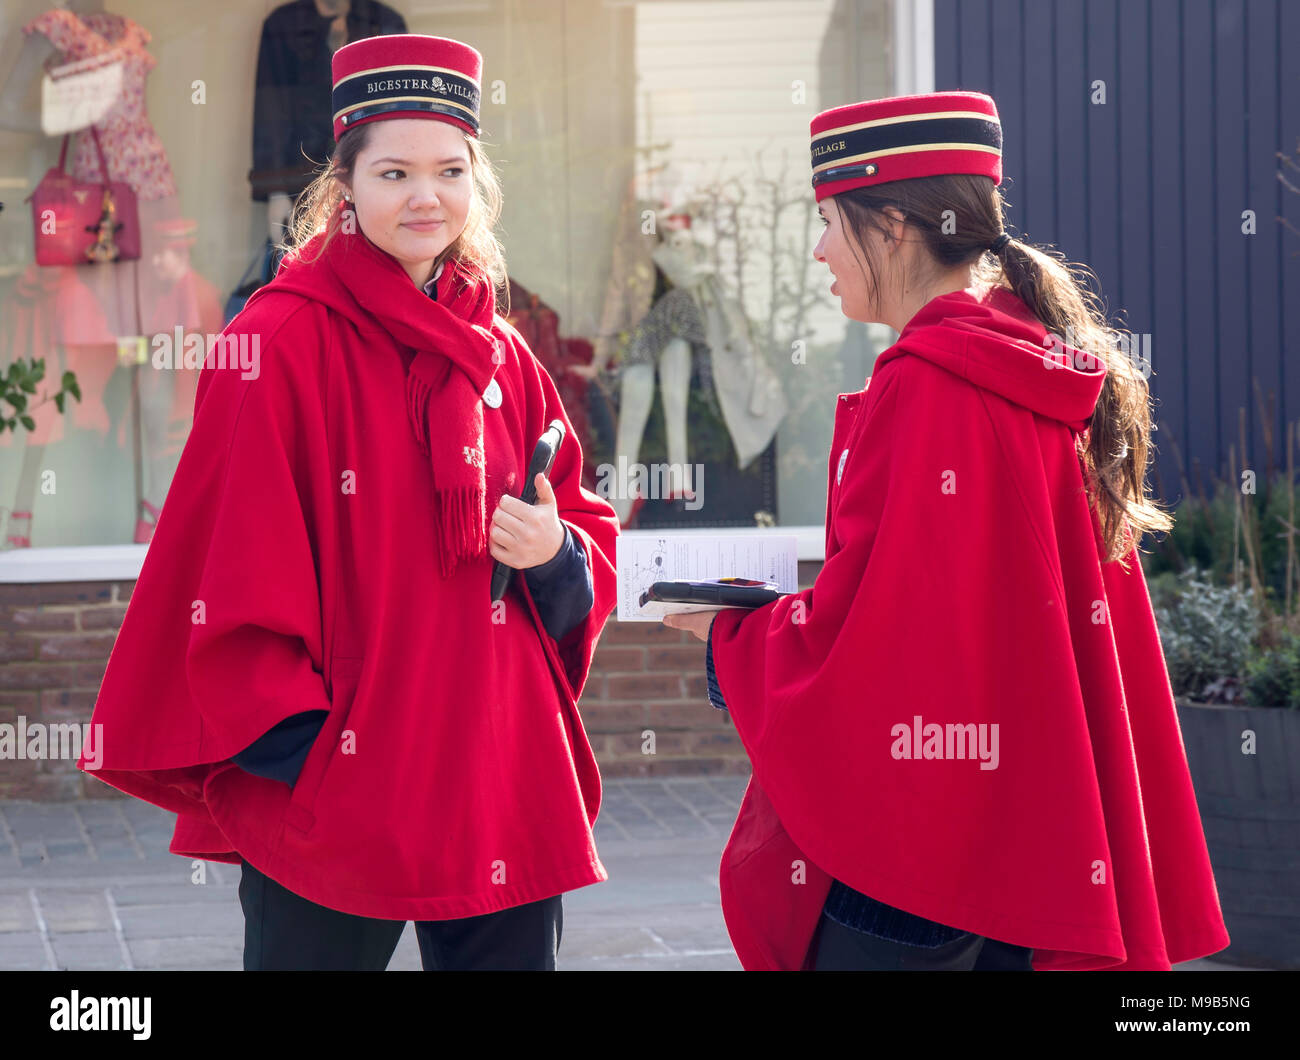 Young female guides at Bicester Village Outlet Shopping Centre, Bicester, Oxfordshire, England, United Kingdom - Stock Image